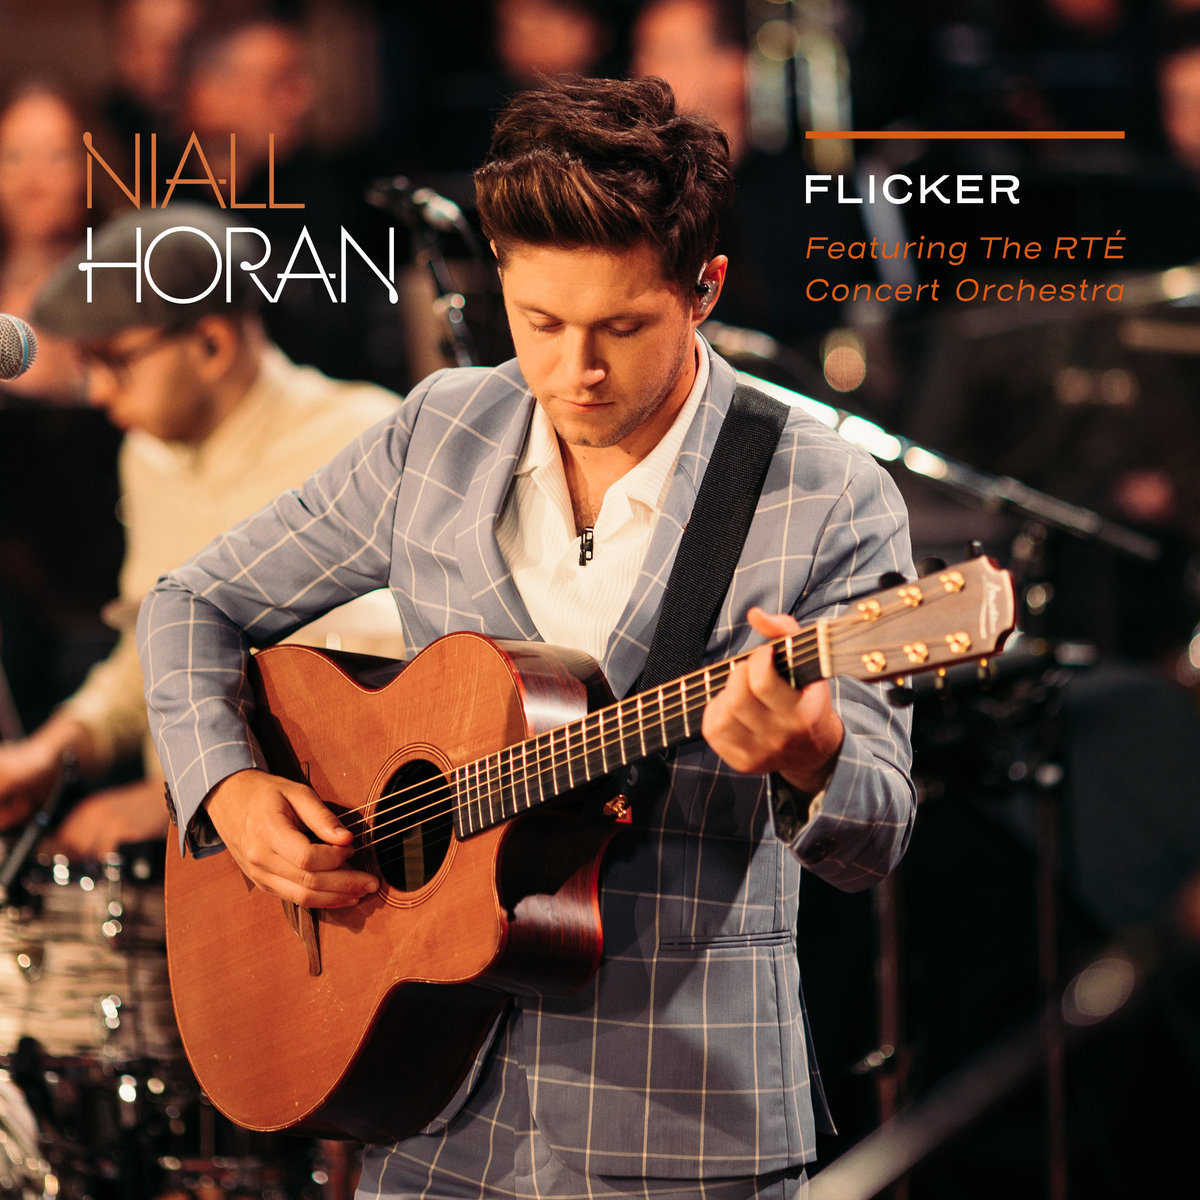 Niall Horan-The Rte Concert Orchestra Flicker